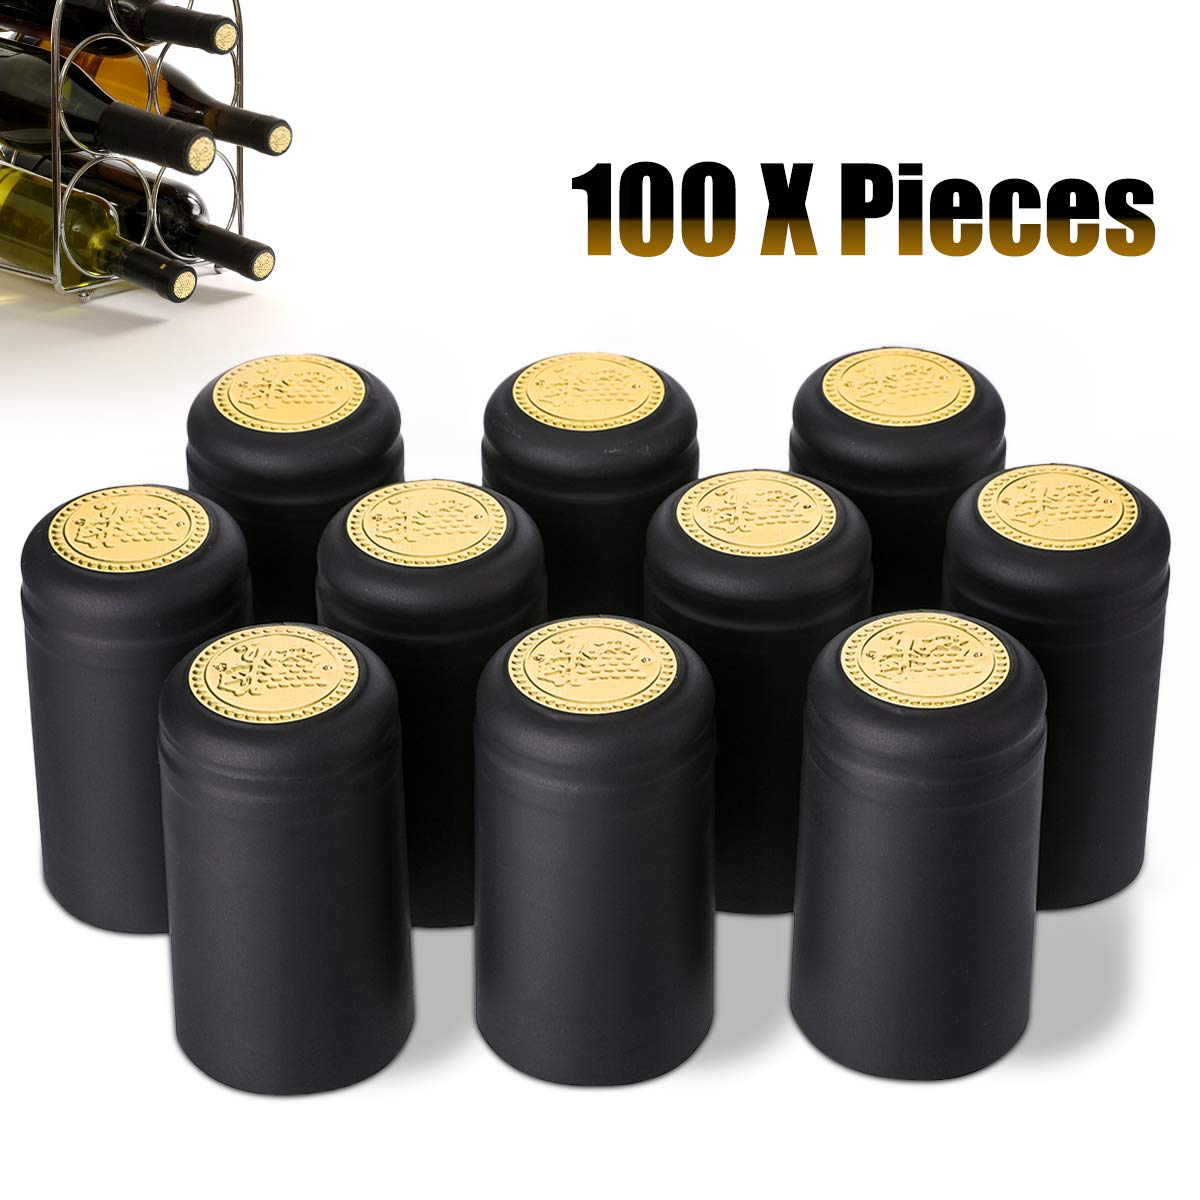 Janolia Heat Shrink Capsules, 100Pcs Wine Shrink Caps Bottle Seals, Easily Seal and Tear Off with Tearing Tab, Great Gift for Father, Black by Janolia